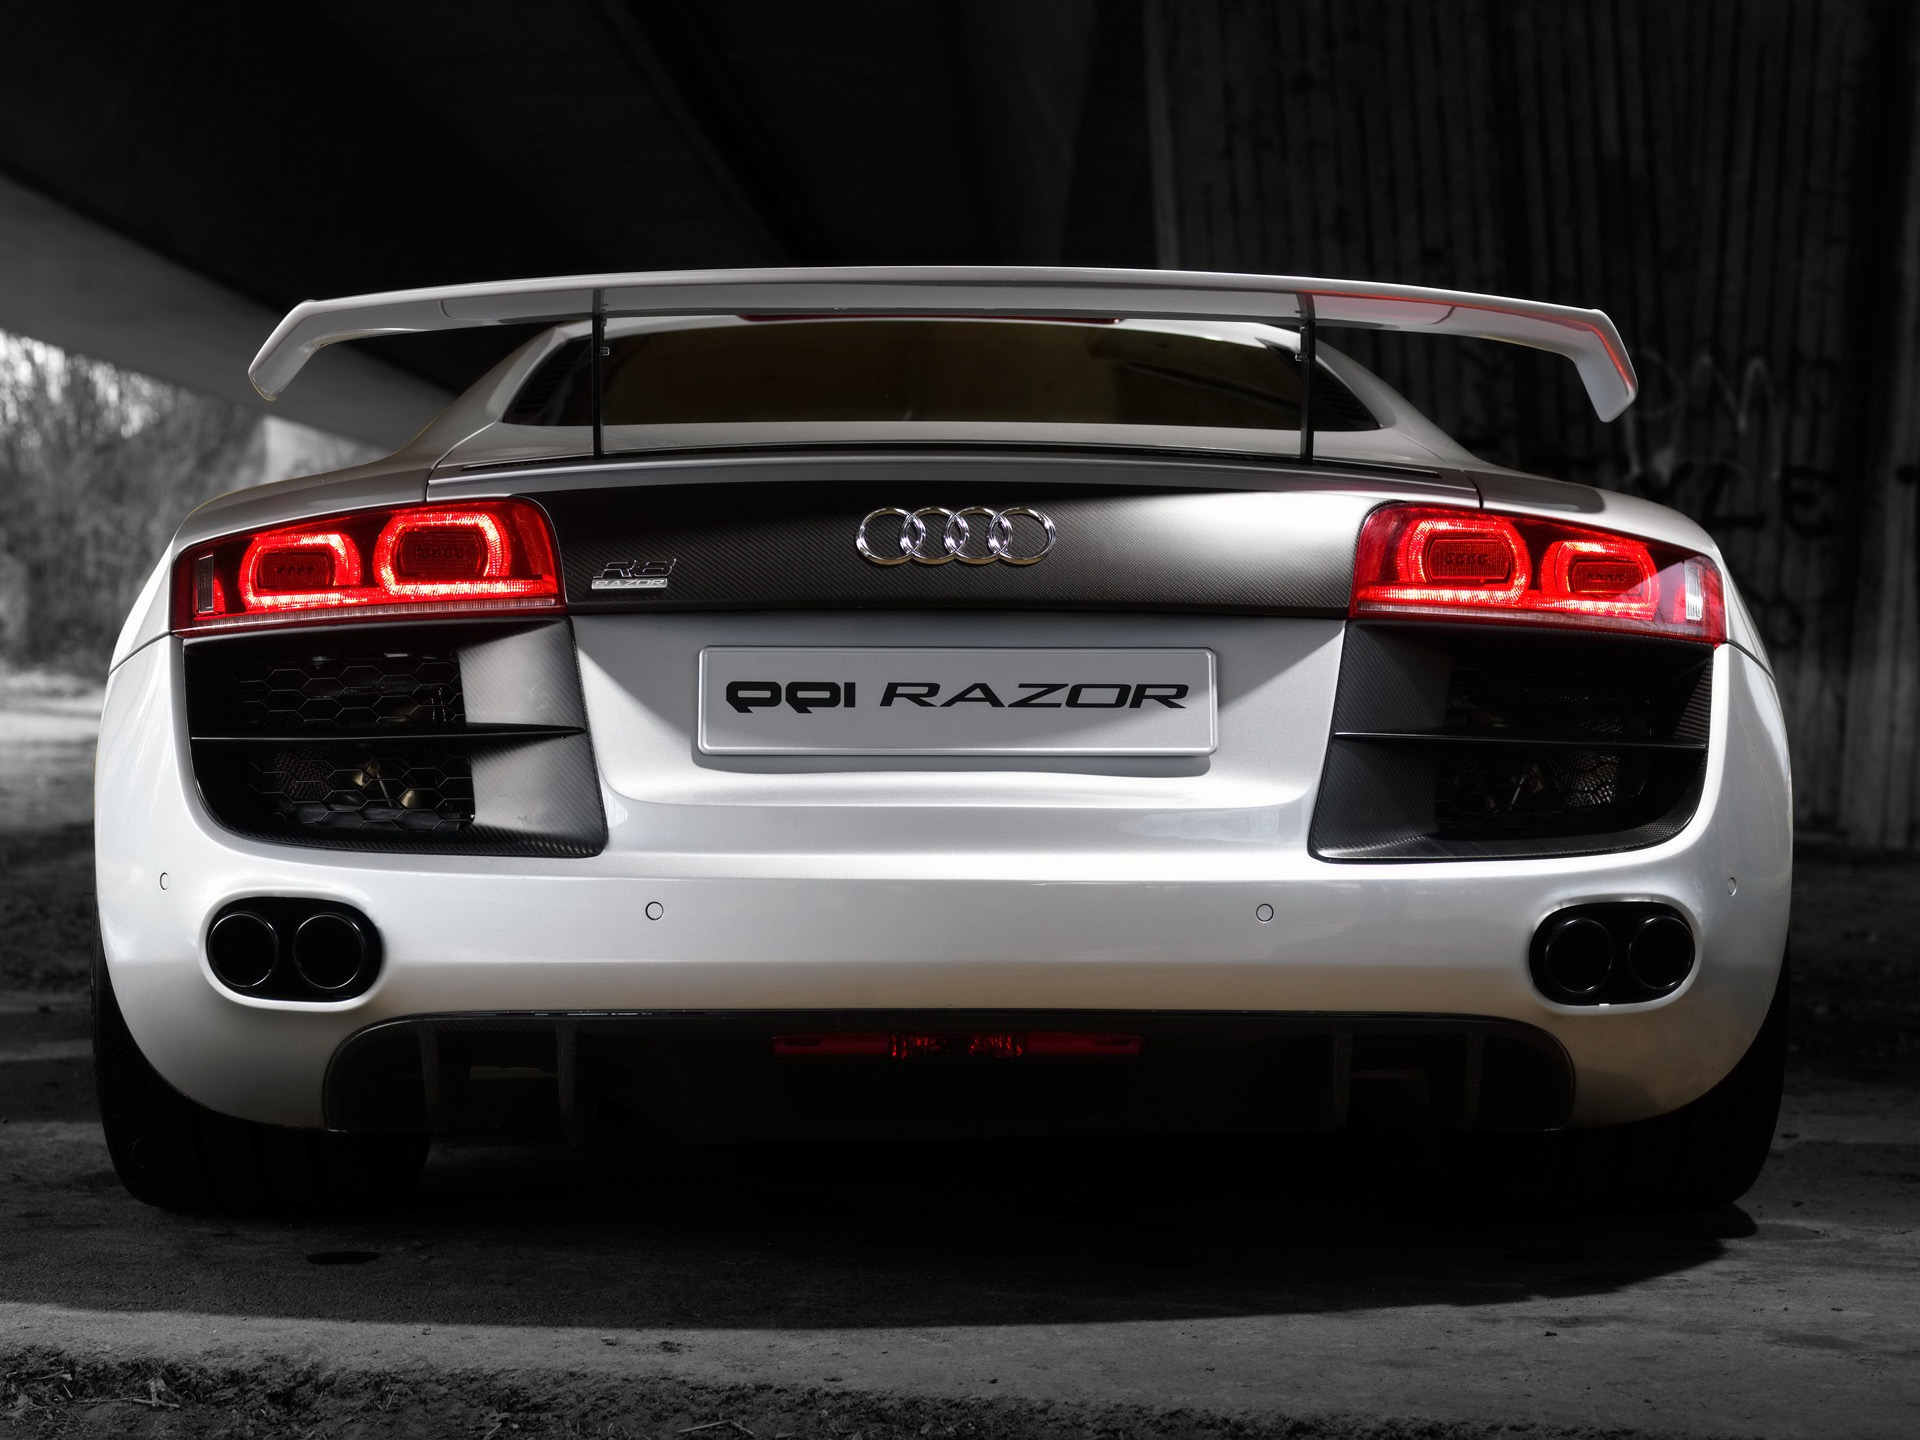 PPI Audi R8 Razor Wallpaper Audi Cars